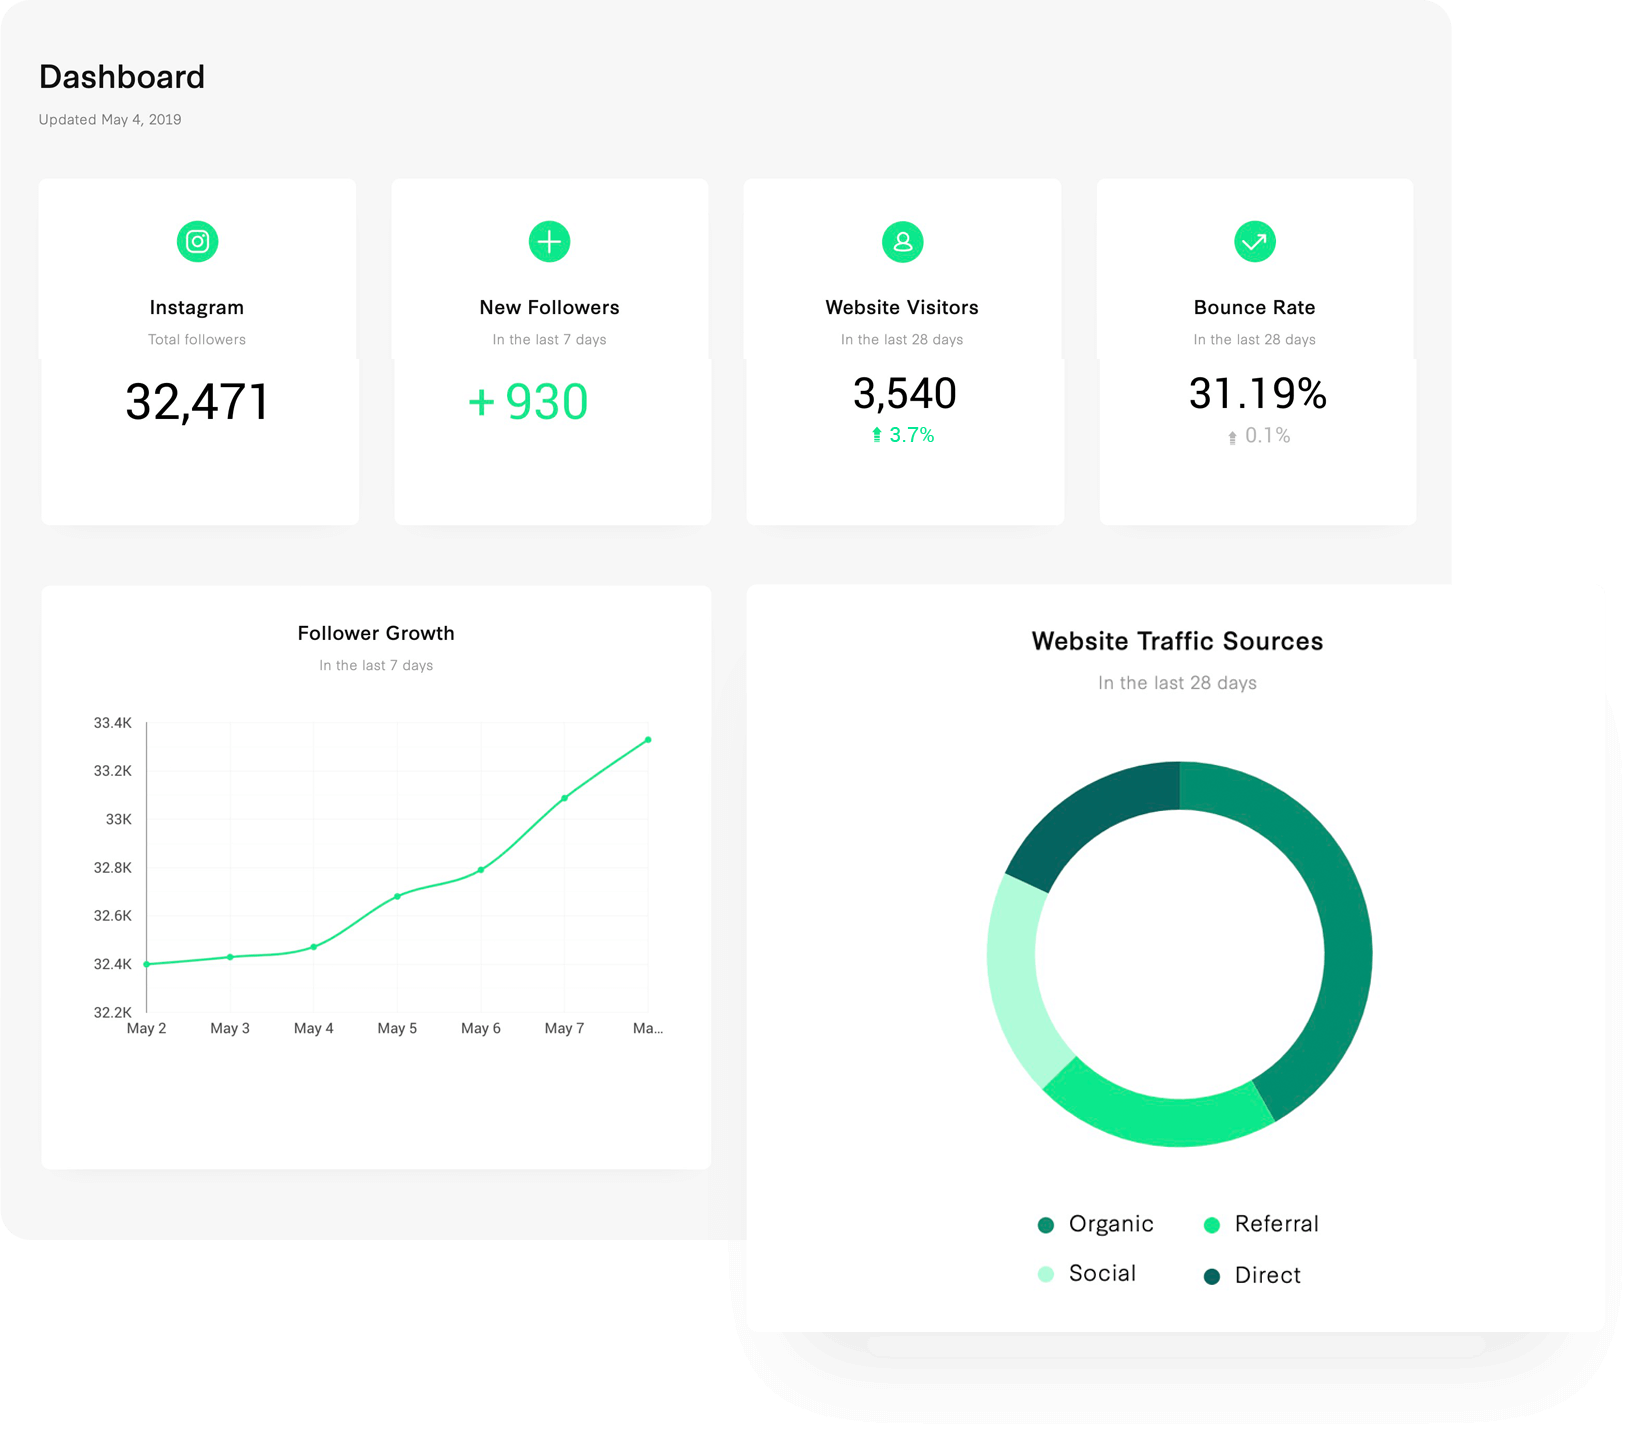 Customizable dashboards for ClientsMonitor your growth in real-time - We're always looking for ways to help our Clients improve. Our fully-customizable Client Dashboards support monitoring across Instagram, Facebook, Shopify, Mailchimp, Stripe, Square, Google Analytics, and any other social media channel—all in one place.